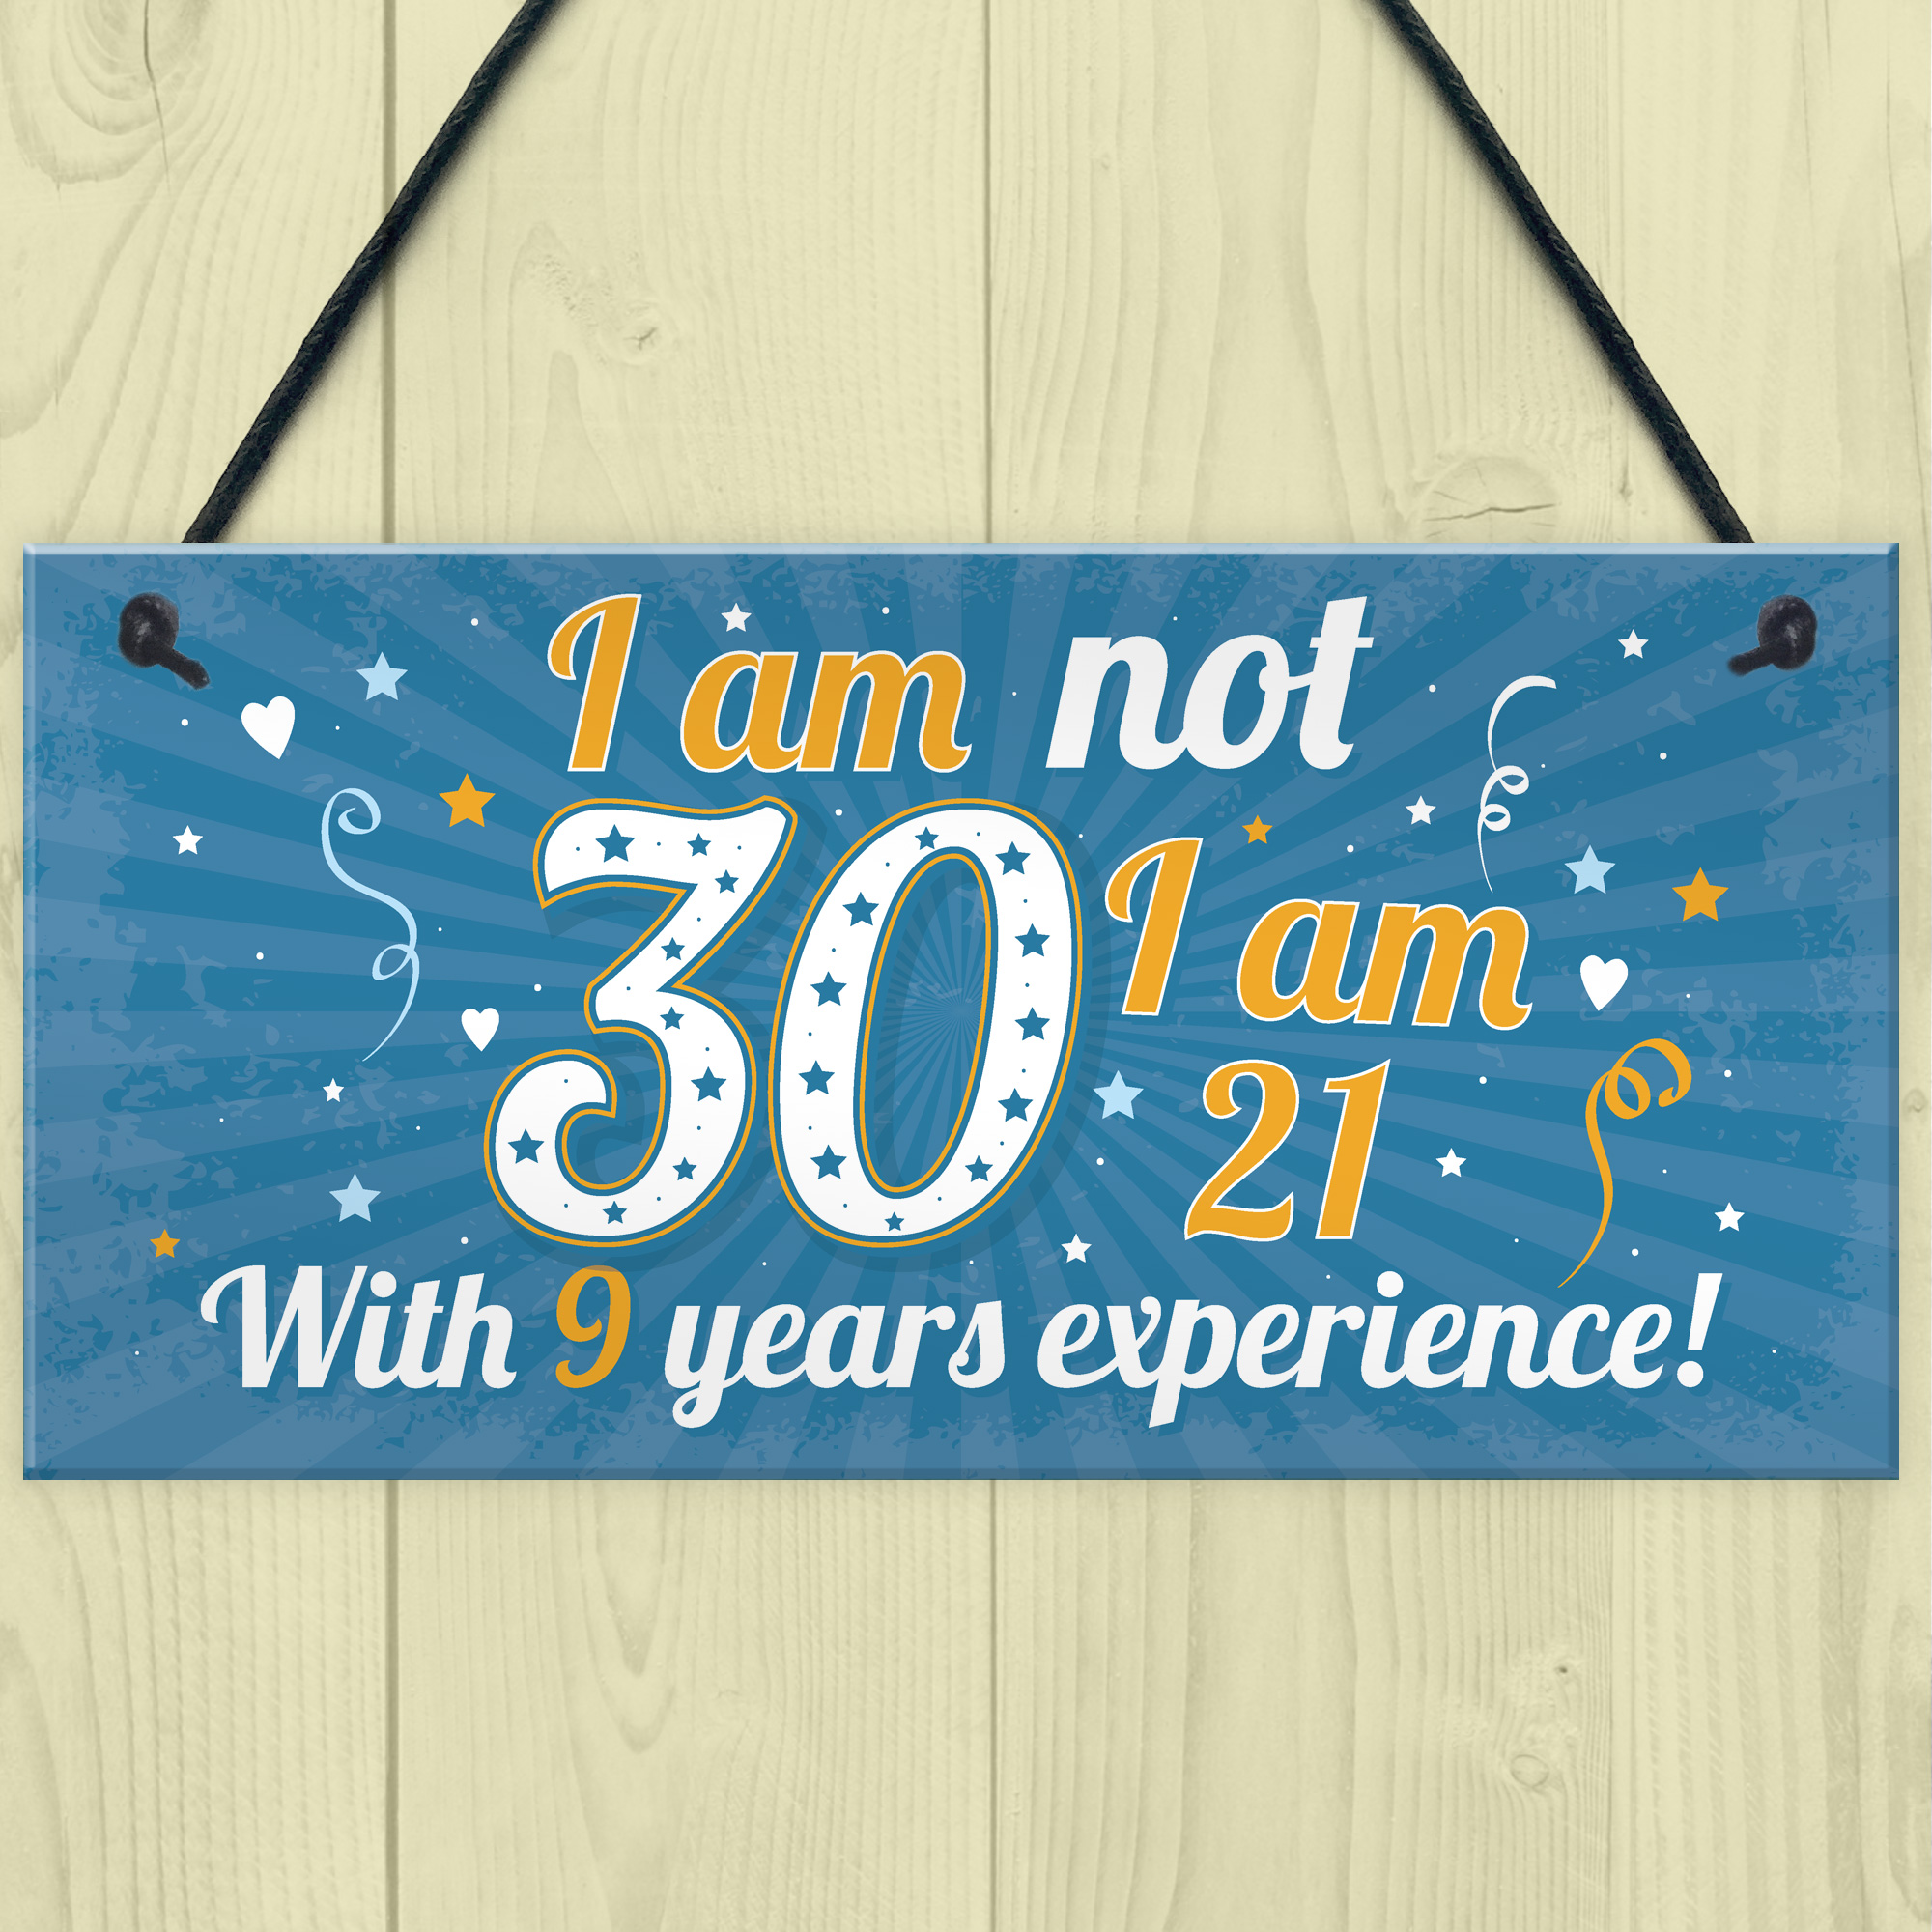 Details About Funny 30th Birthday Gift Hanging Plaque Novelty Friendship Family Brother